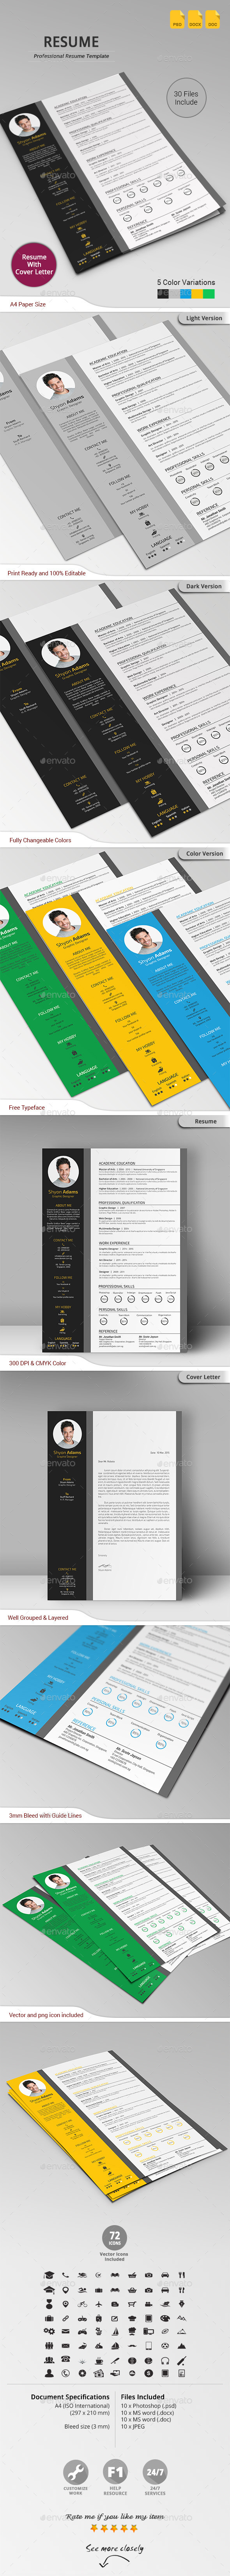 GraphicRiver Resume 10775258